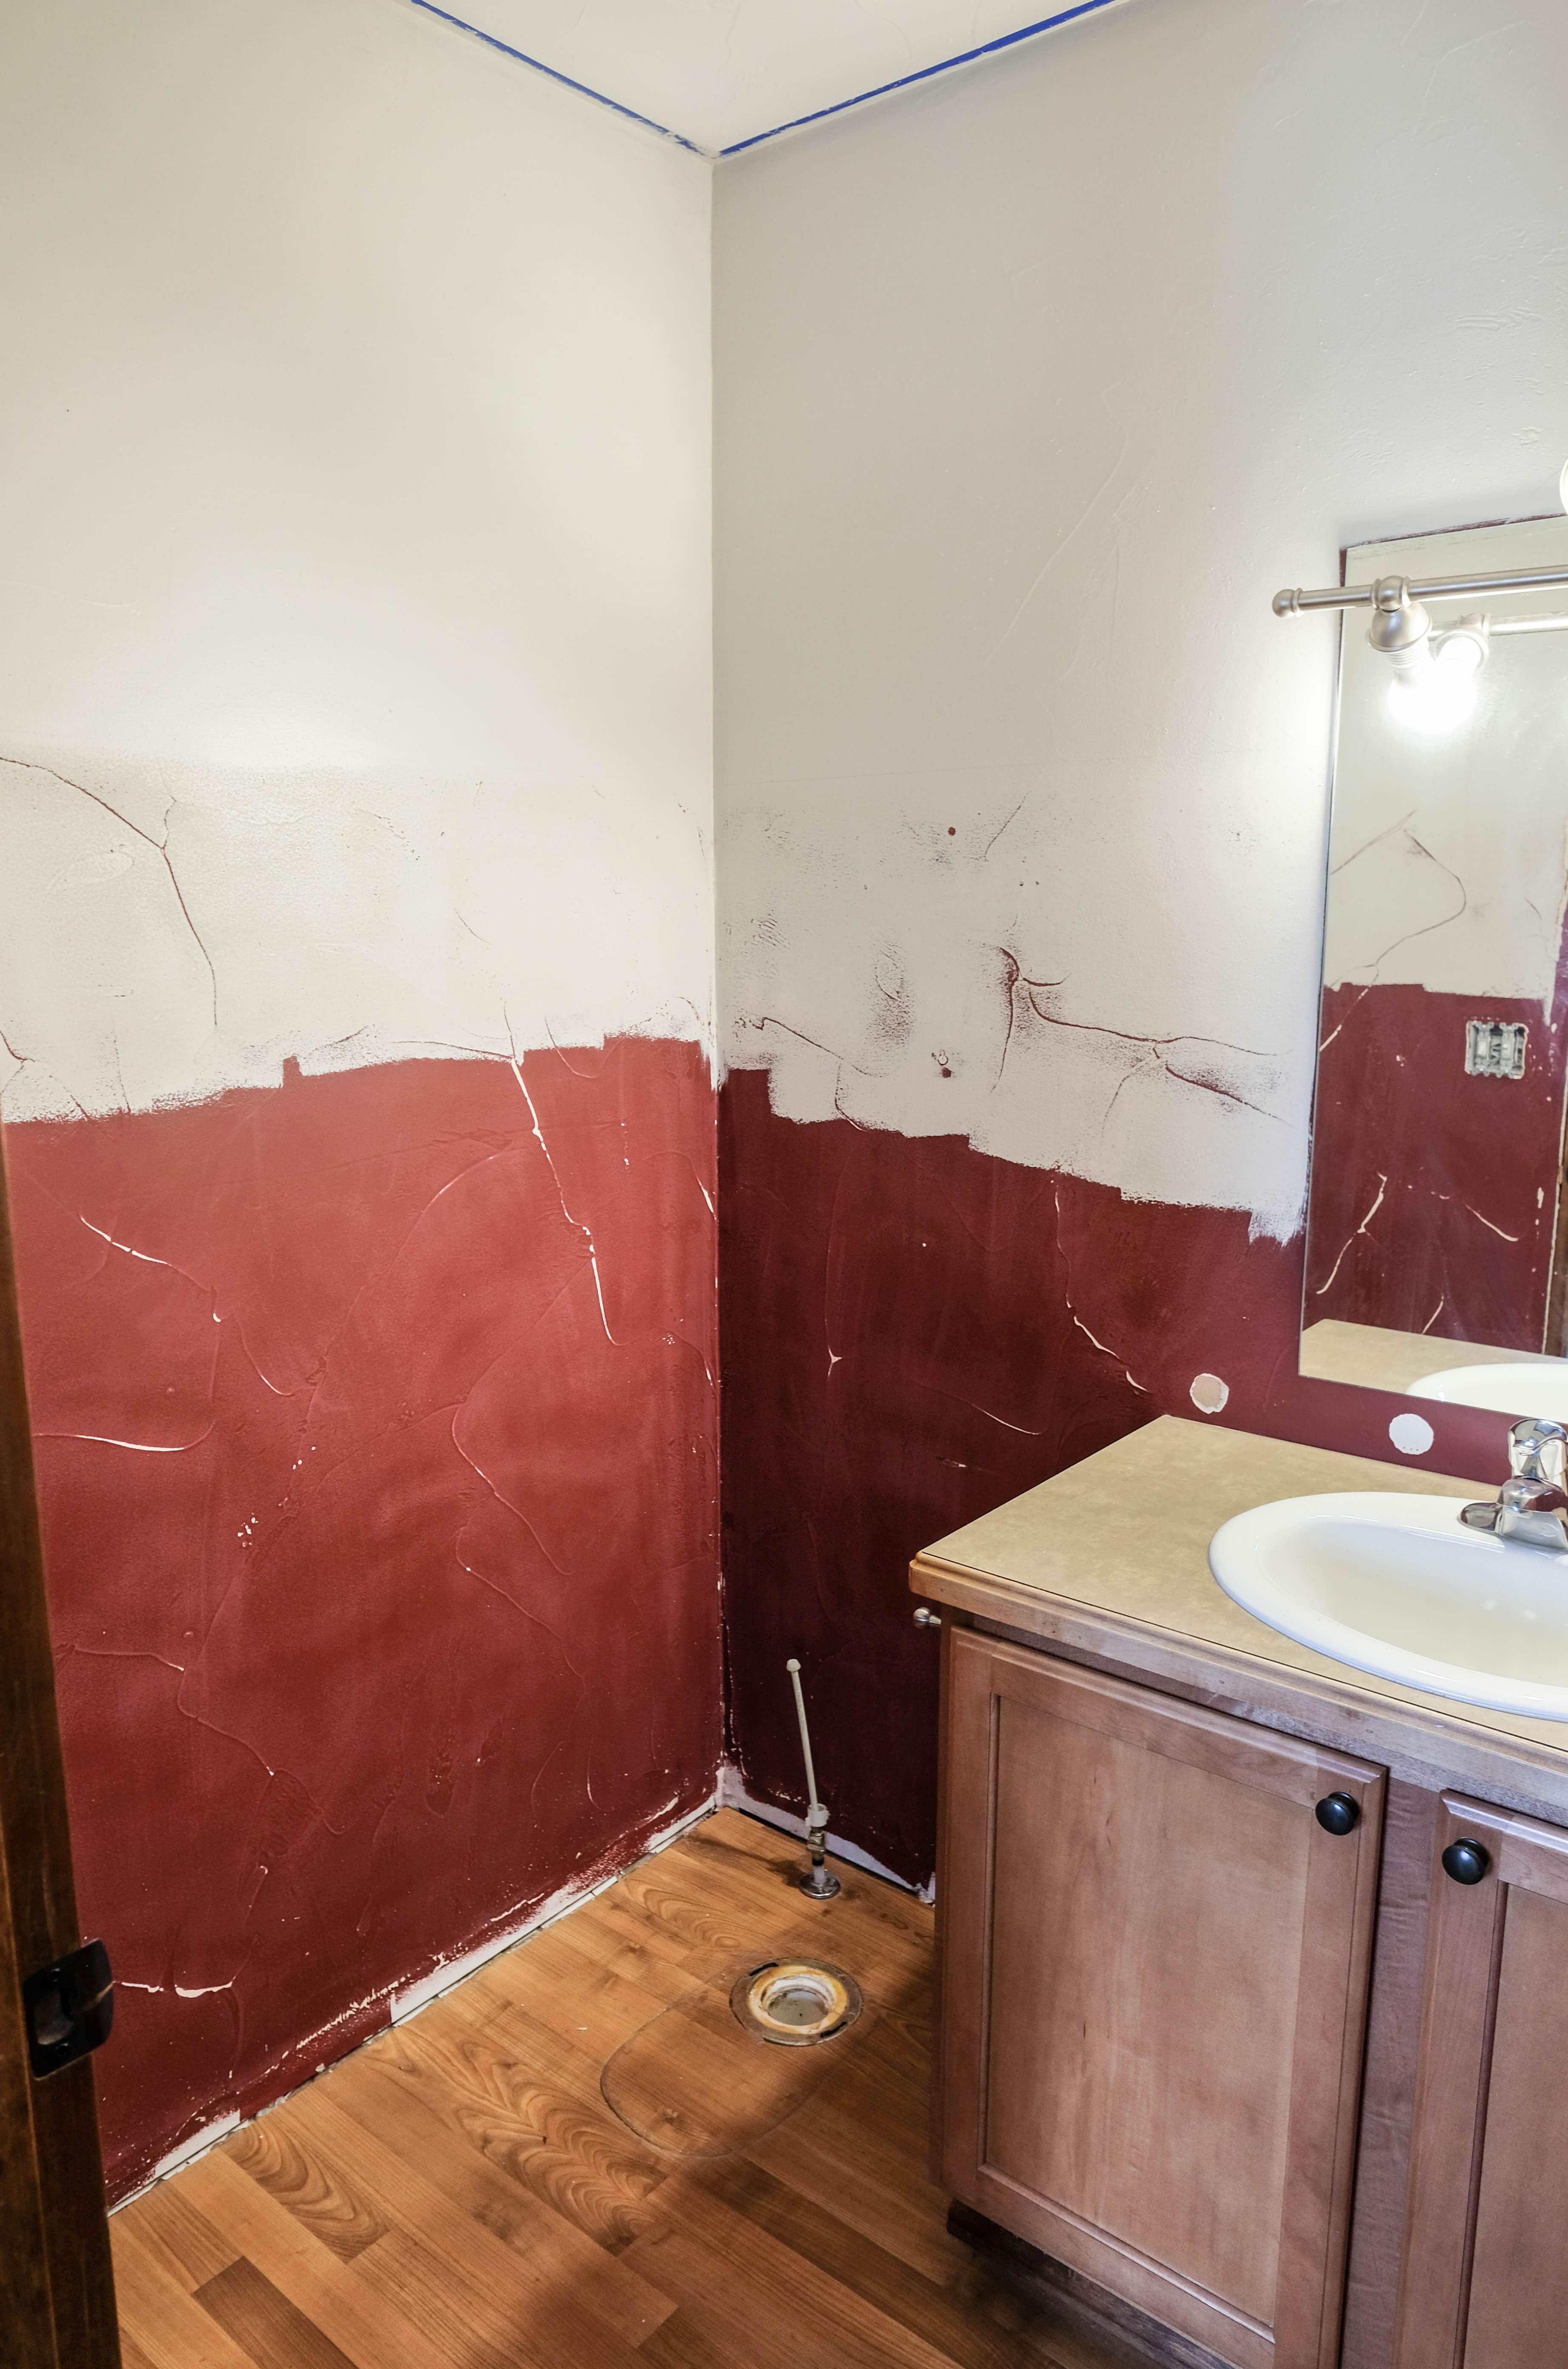 A halfbath in the middle of being painted and sanded in order to apply wallpaper